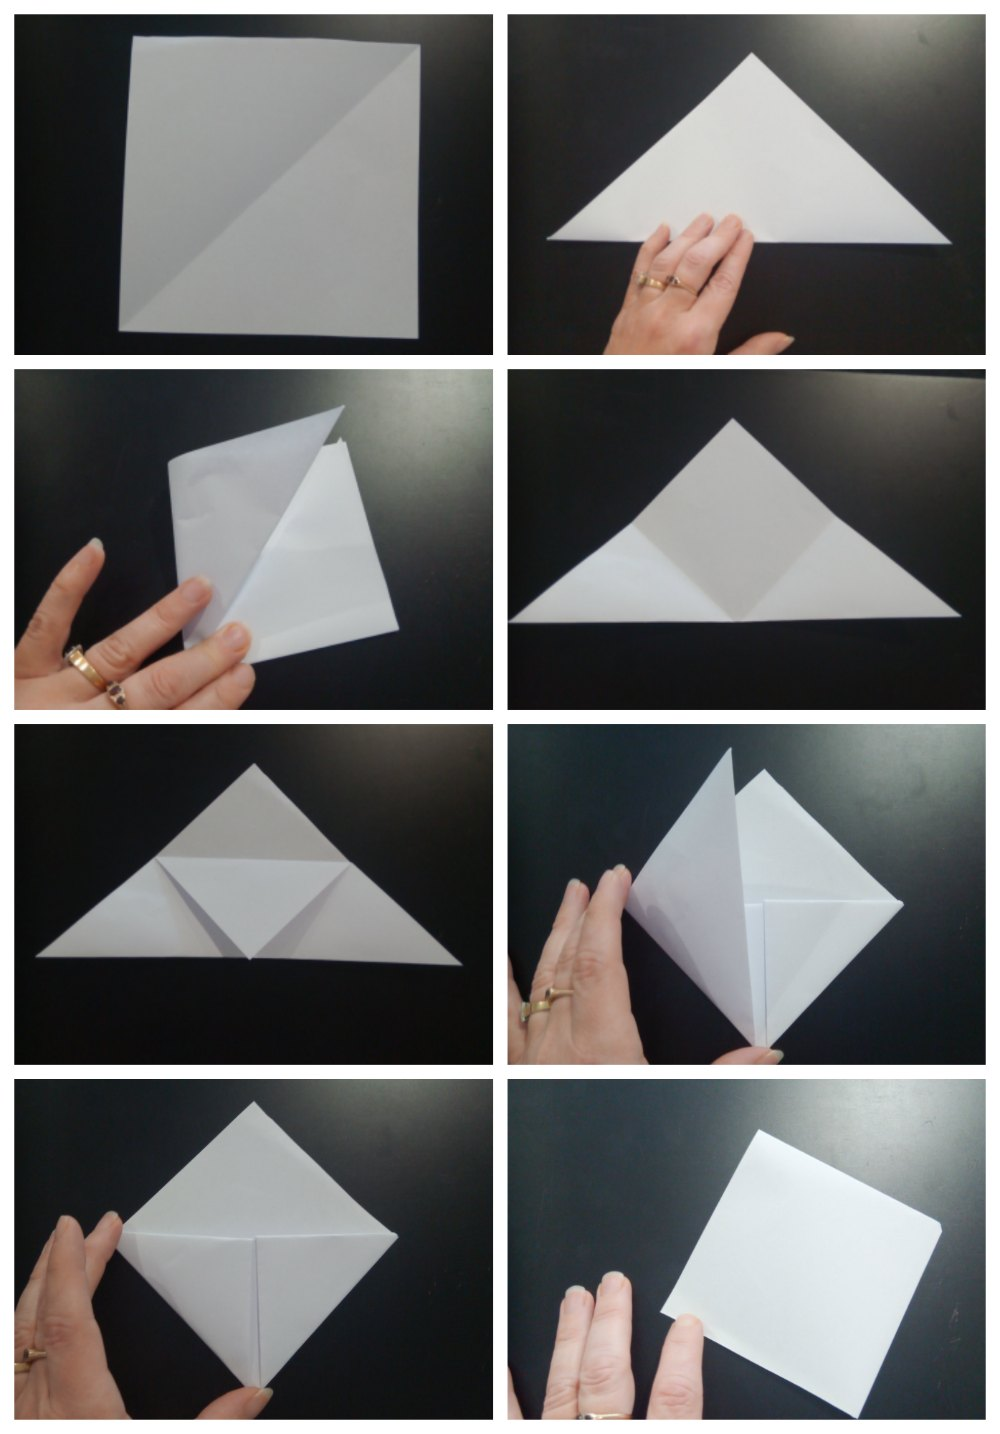 Jigsaw puzzle design of pluripotent origami | Nature Physics | 1434x1000